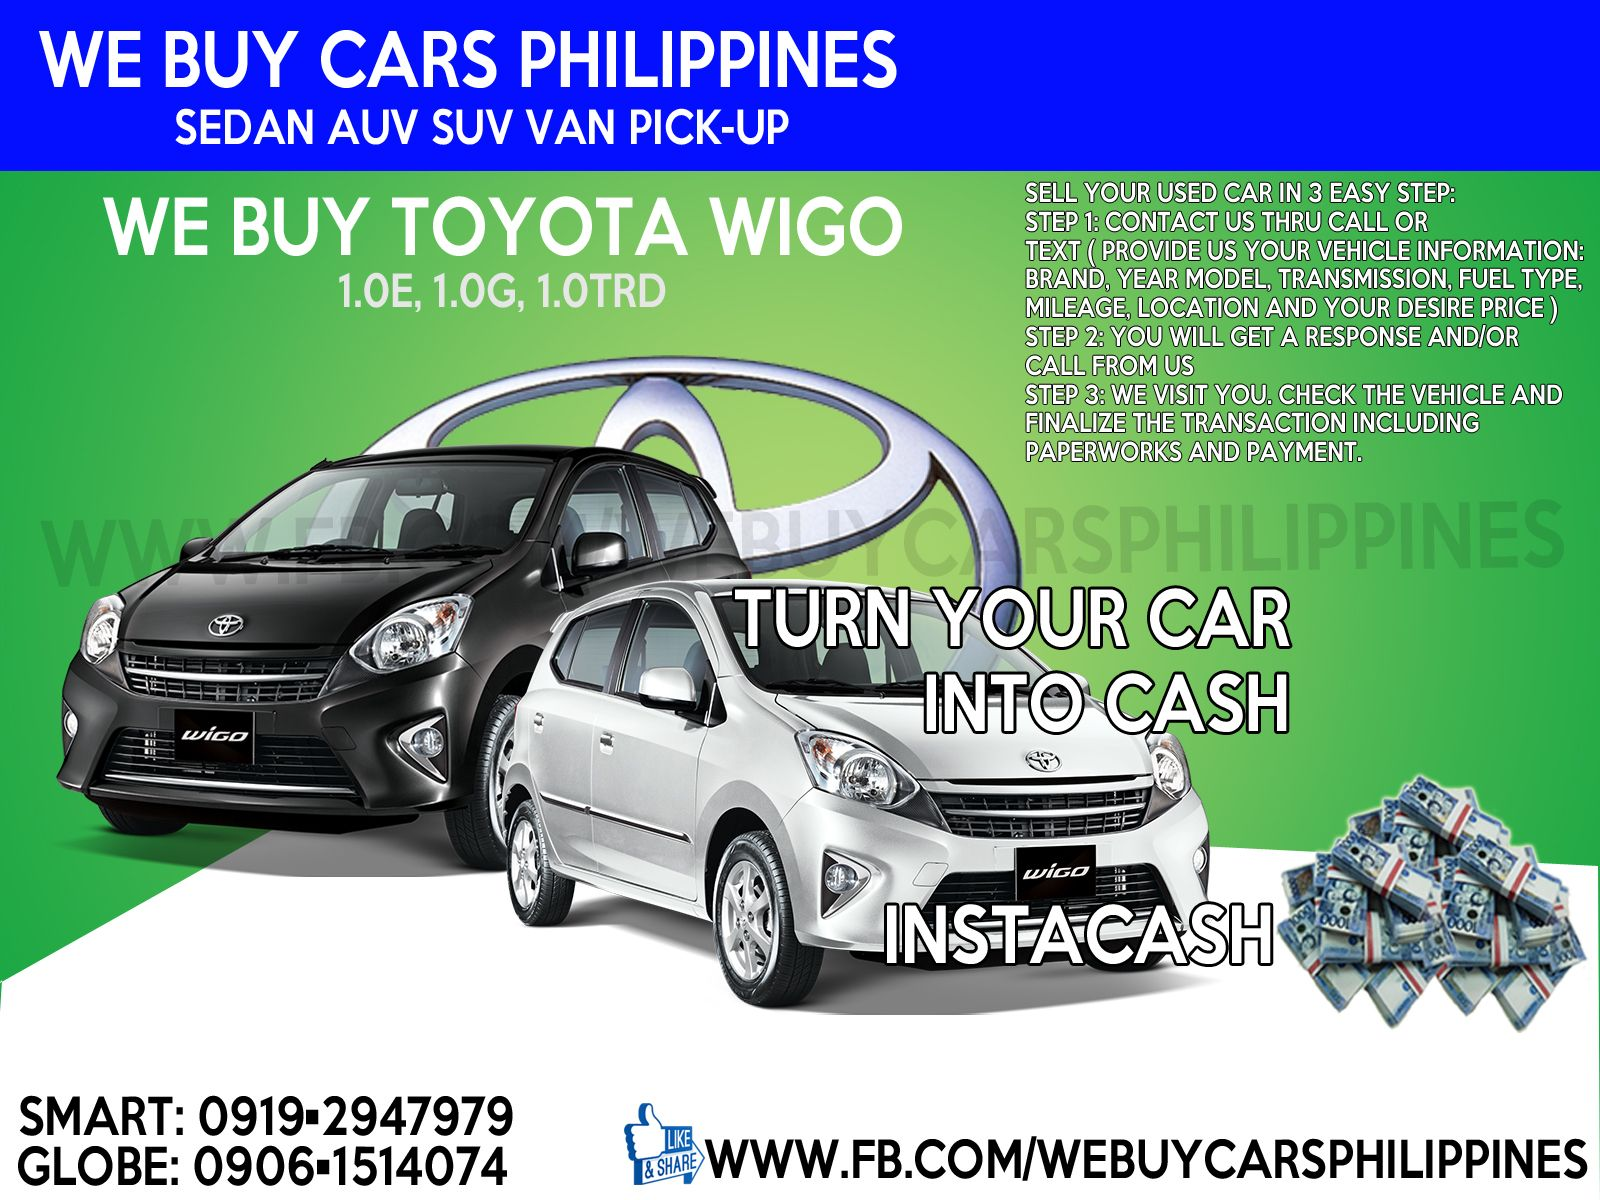 We Buy Used Toyota Wigo Philippines Contact Numbers Smart 0919